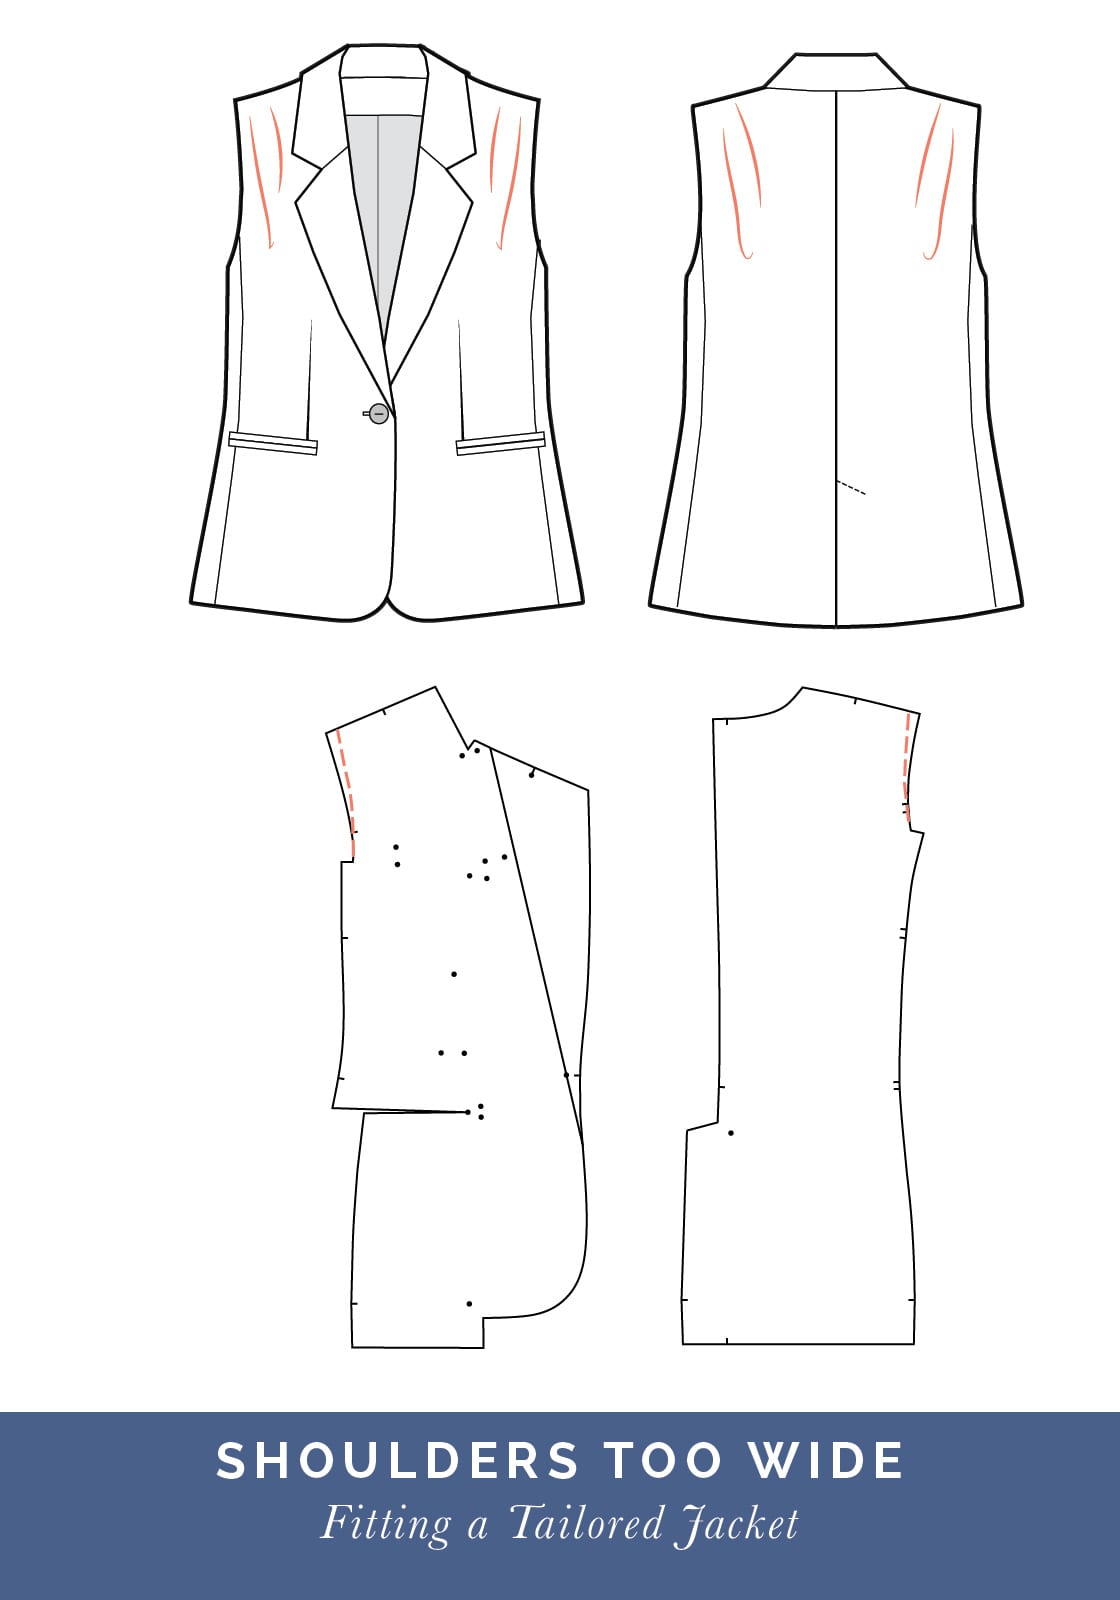 Wide shoulder adjustment // How to fit a Tailored jacket or Blazer // Fit adjustment issues and fixes